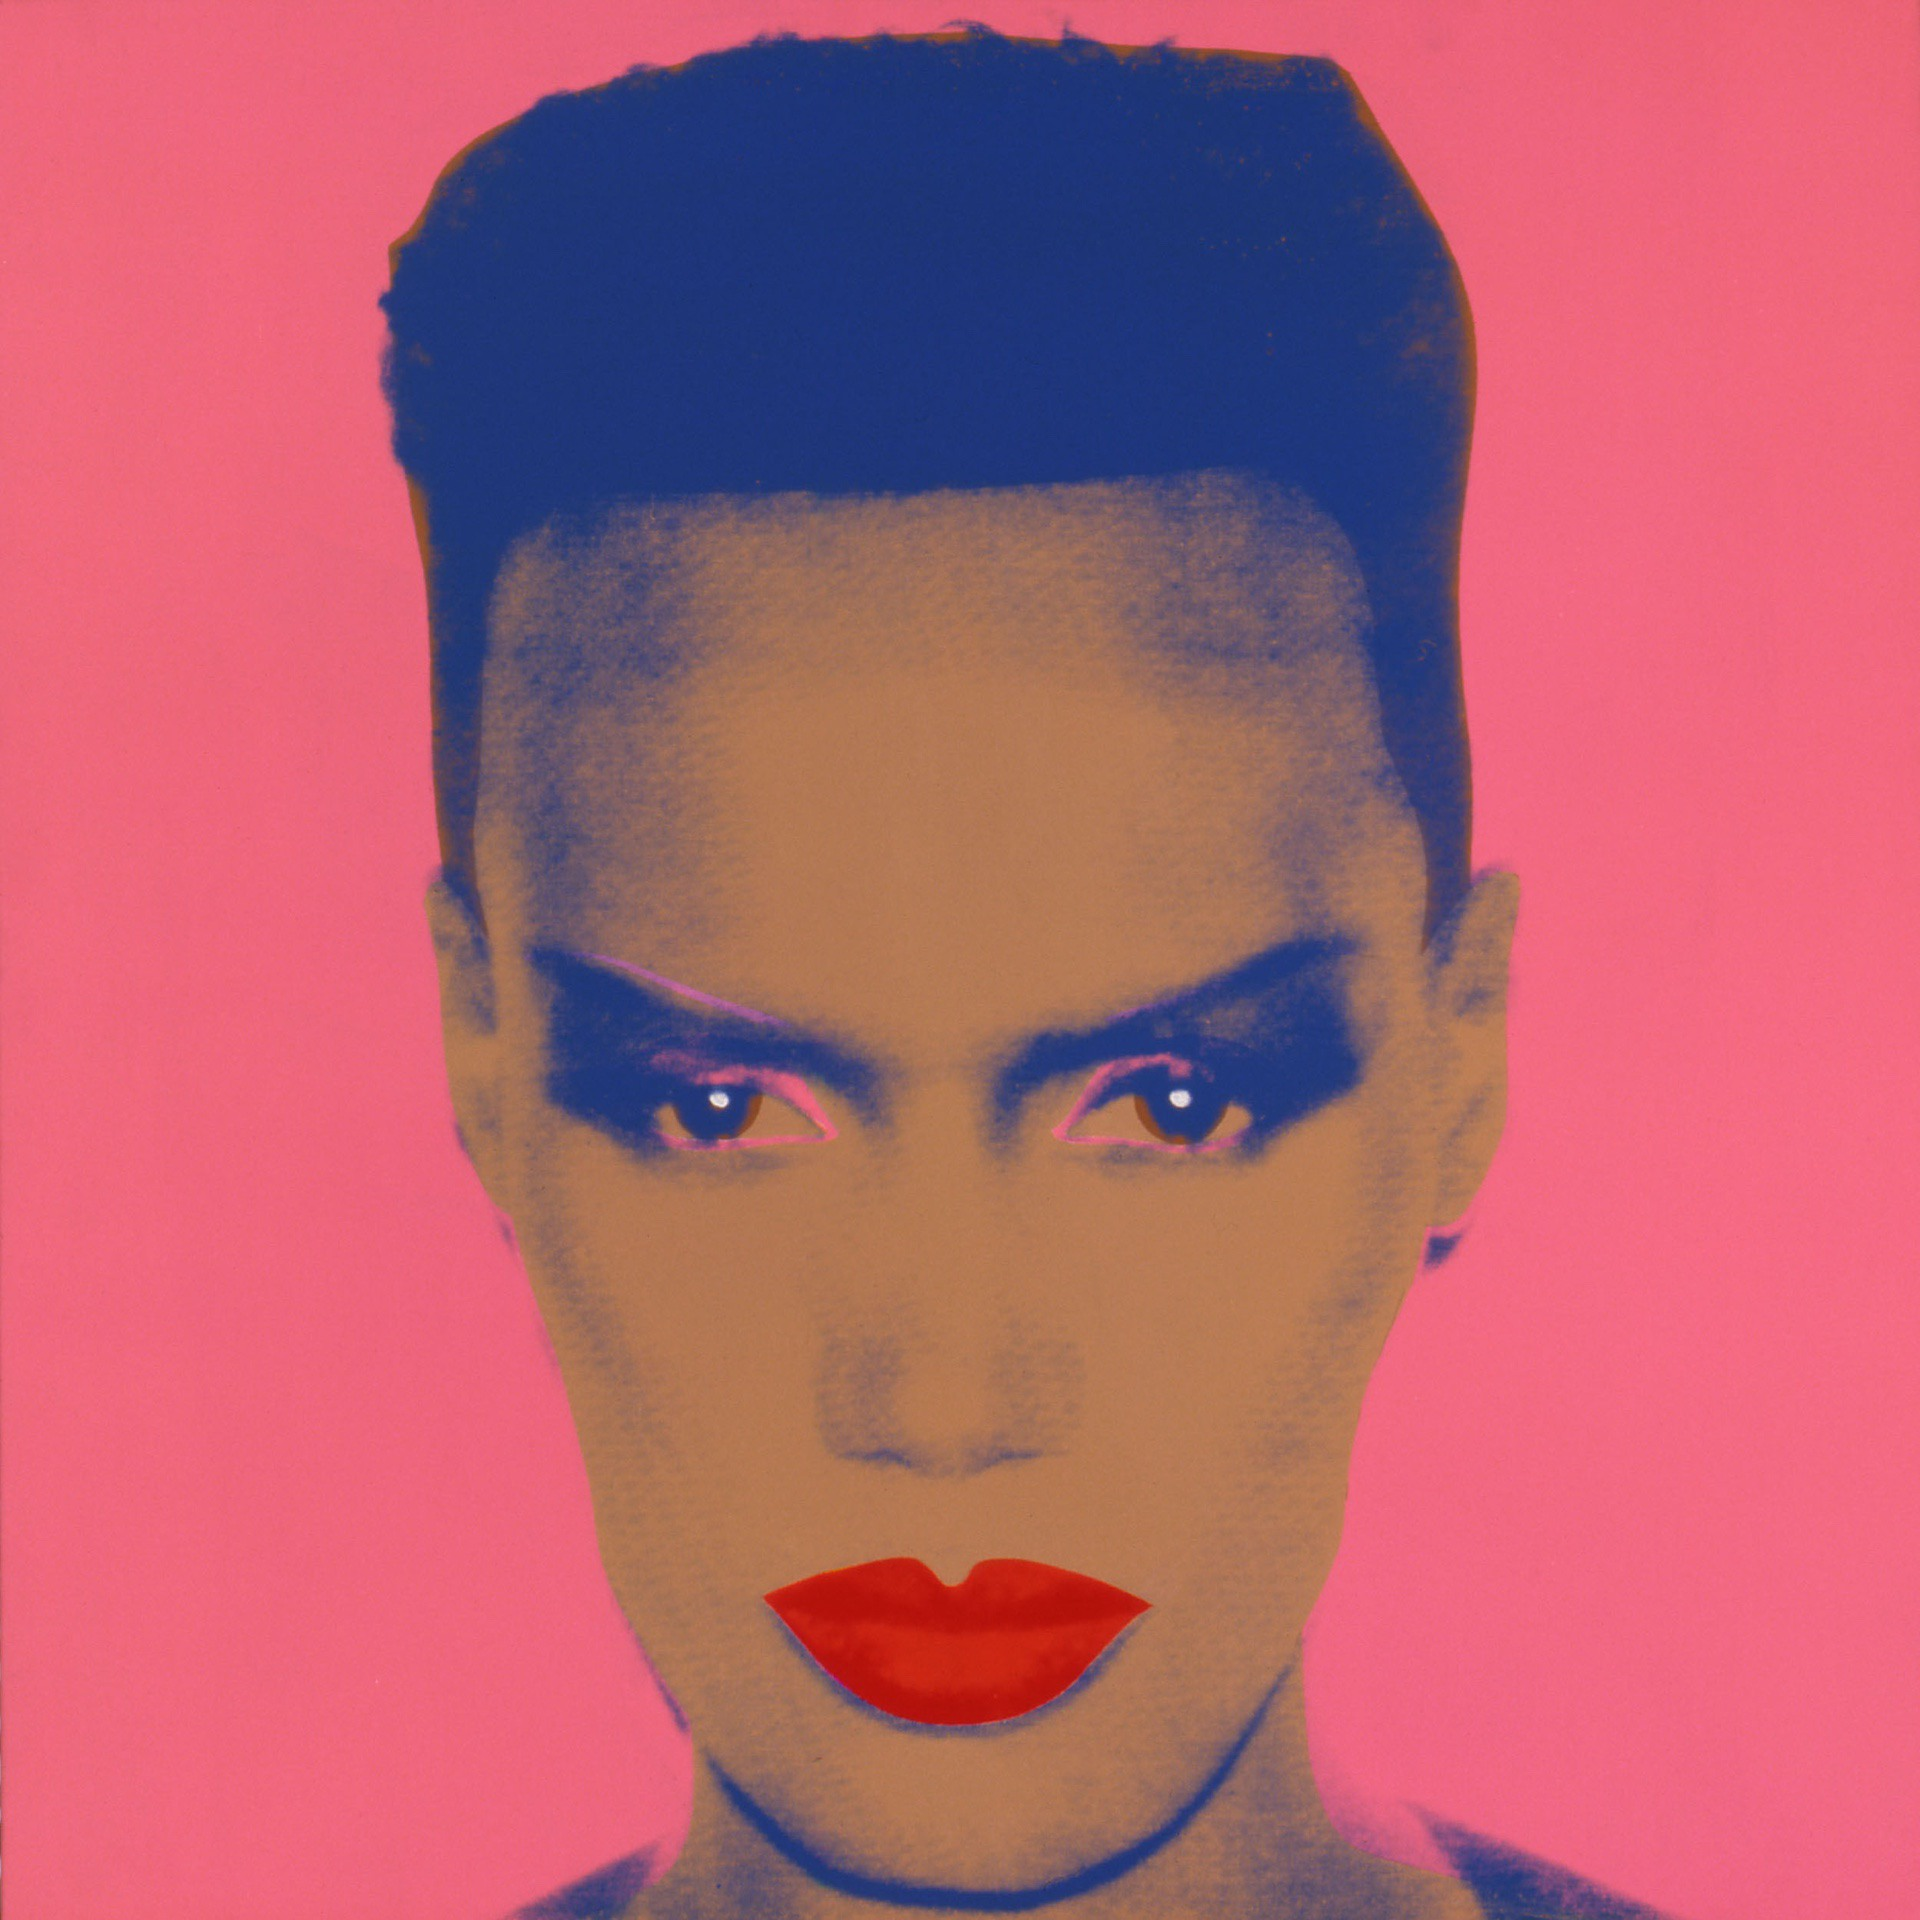 Grace Jones (1986) by Andy Warhol - Pako Campo